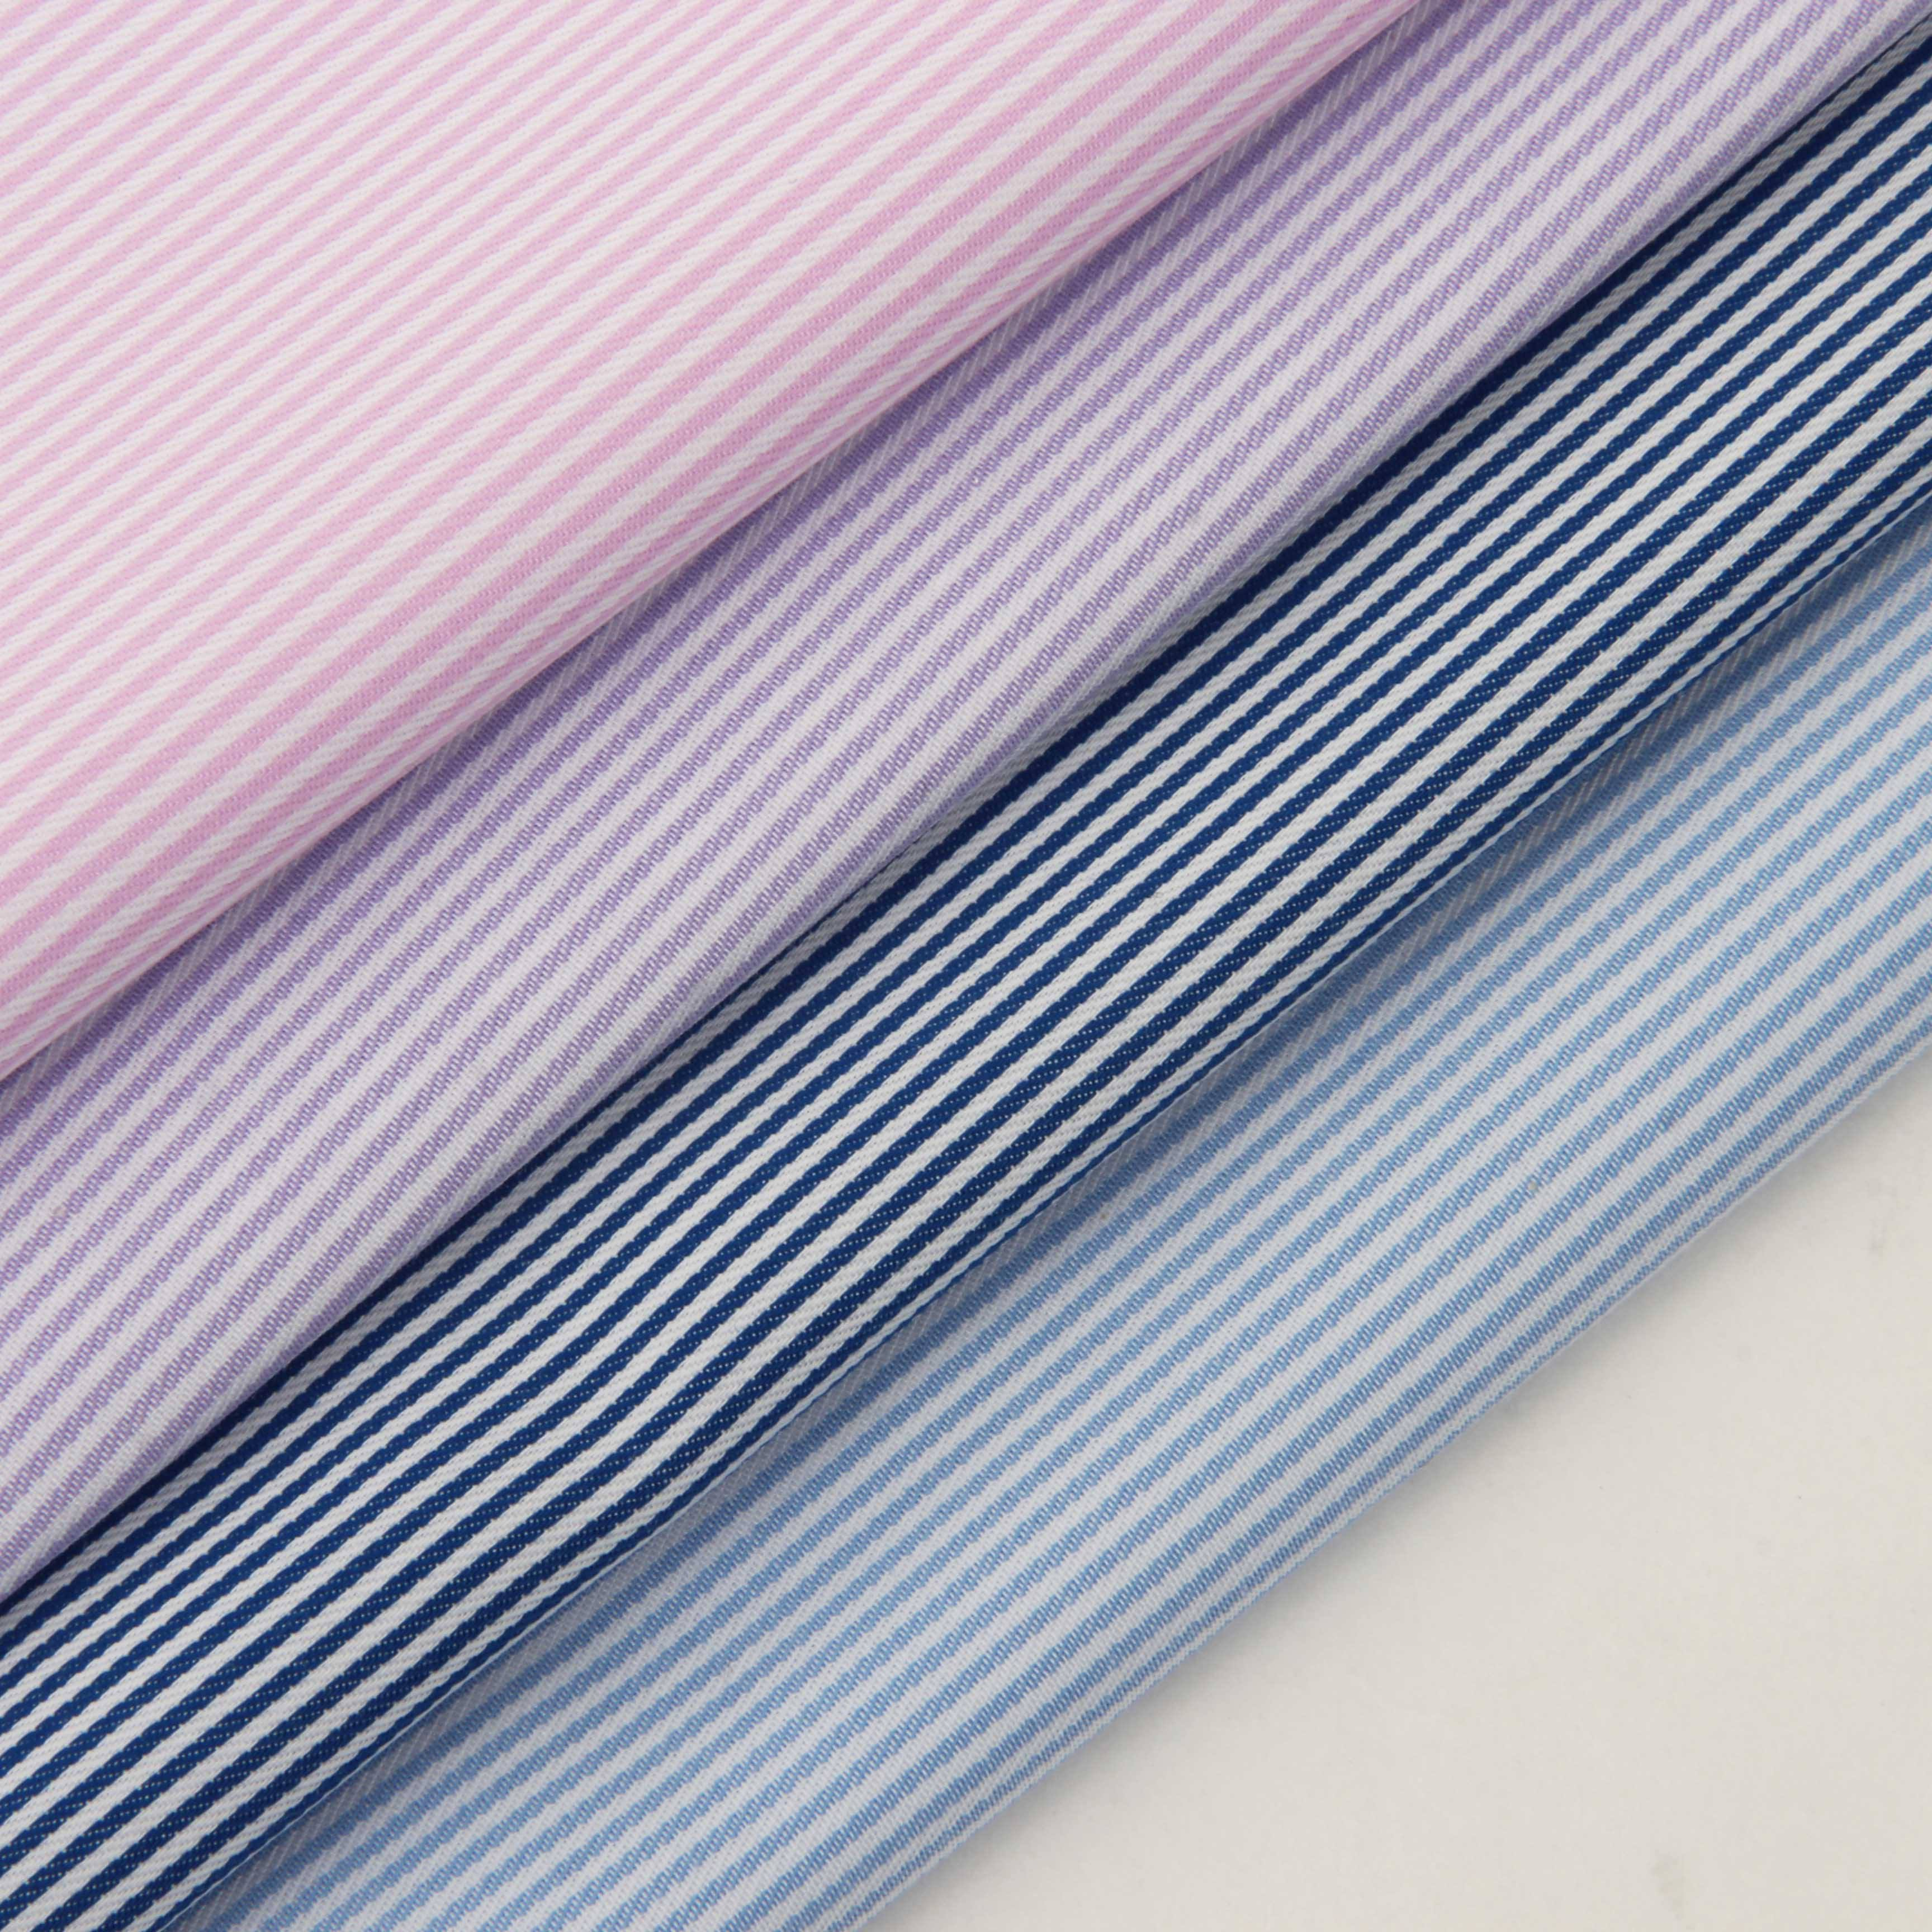 in stock 100% cotton yarn-dyed twill fabric Xinjiang long-staple cotton striped fashion shirt dress breathable woven fabric